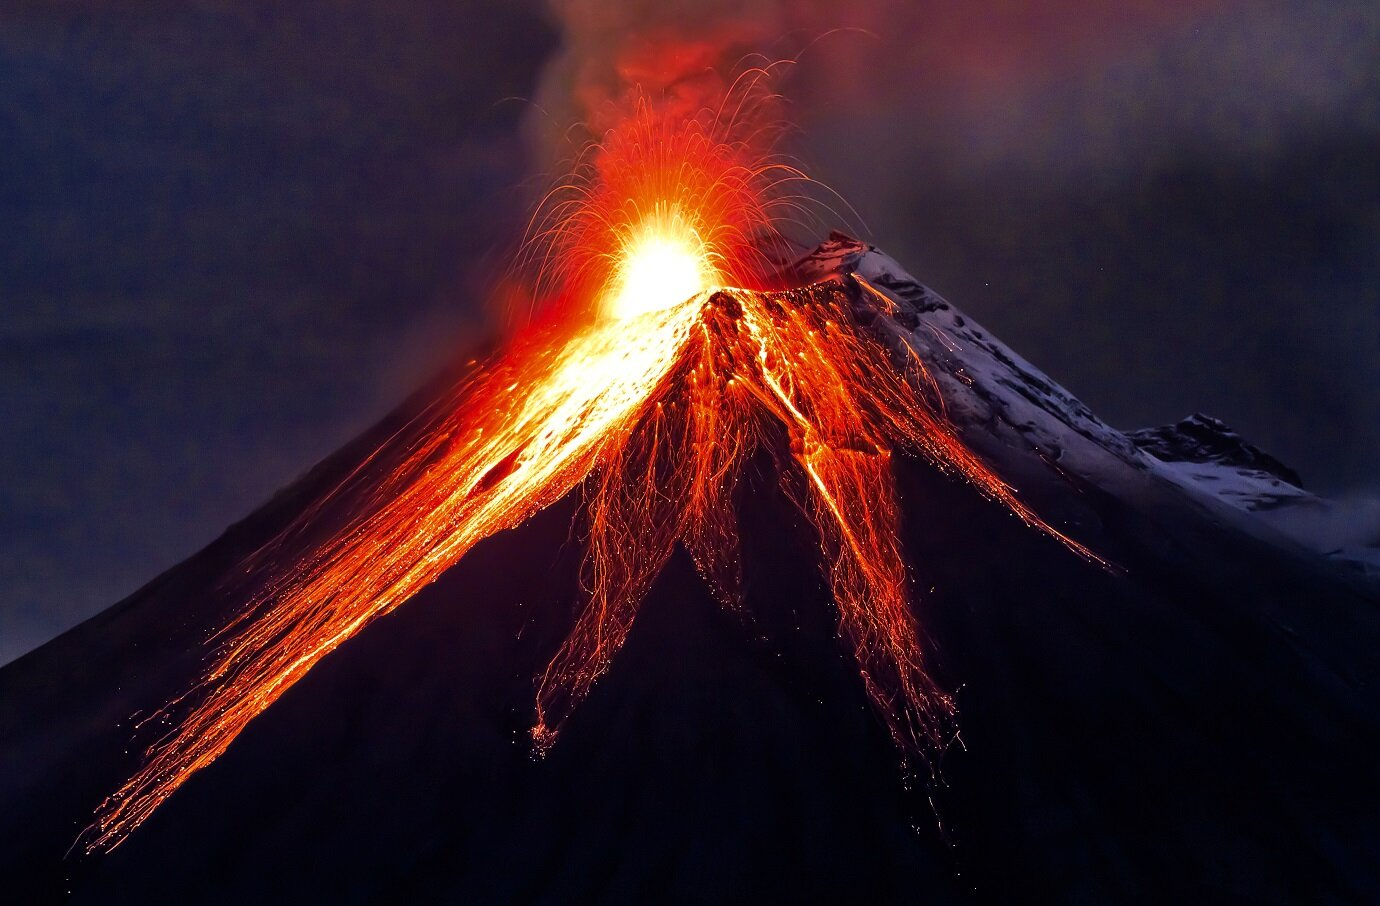 The force released from deep-sea volcanoes is so immense that they could power an entire continent